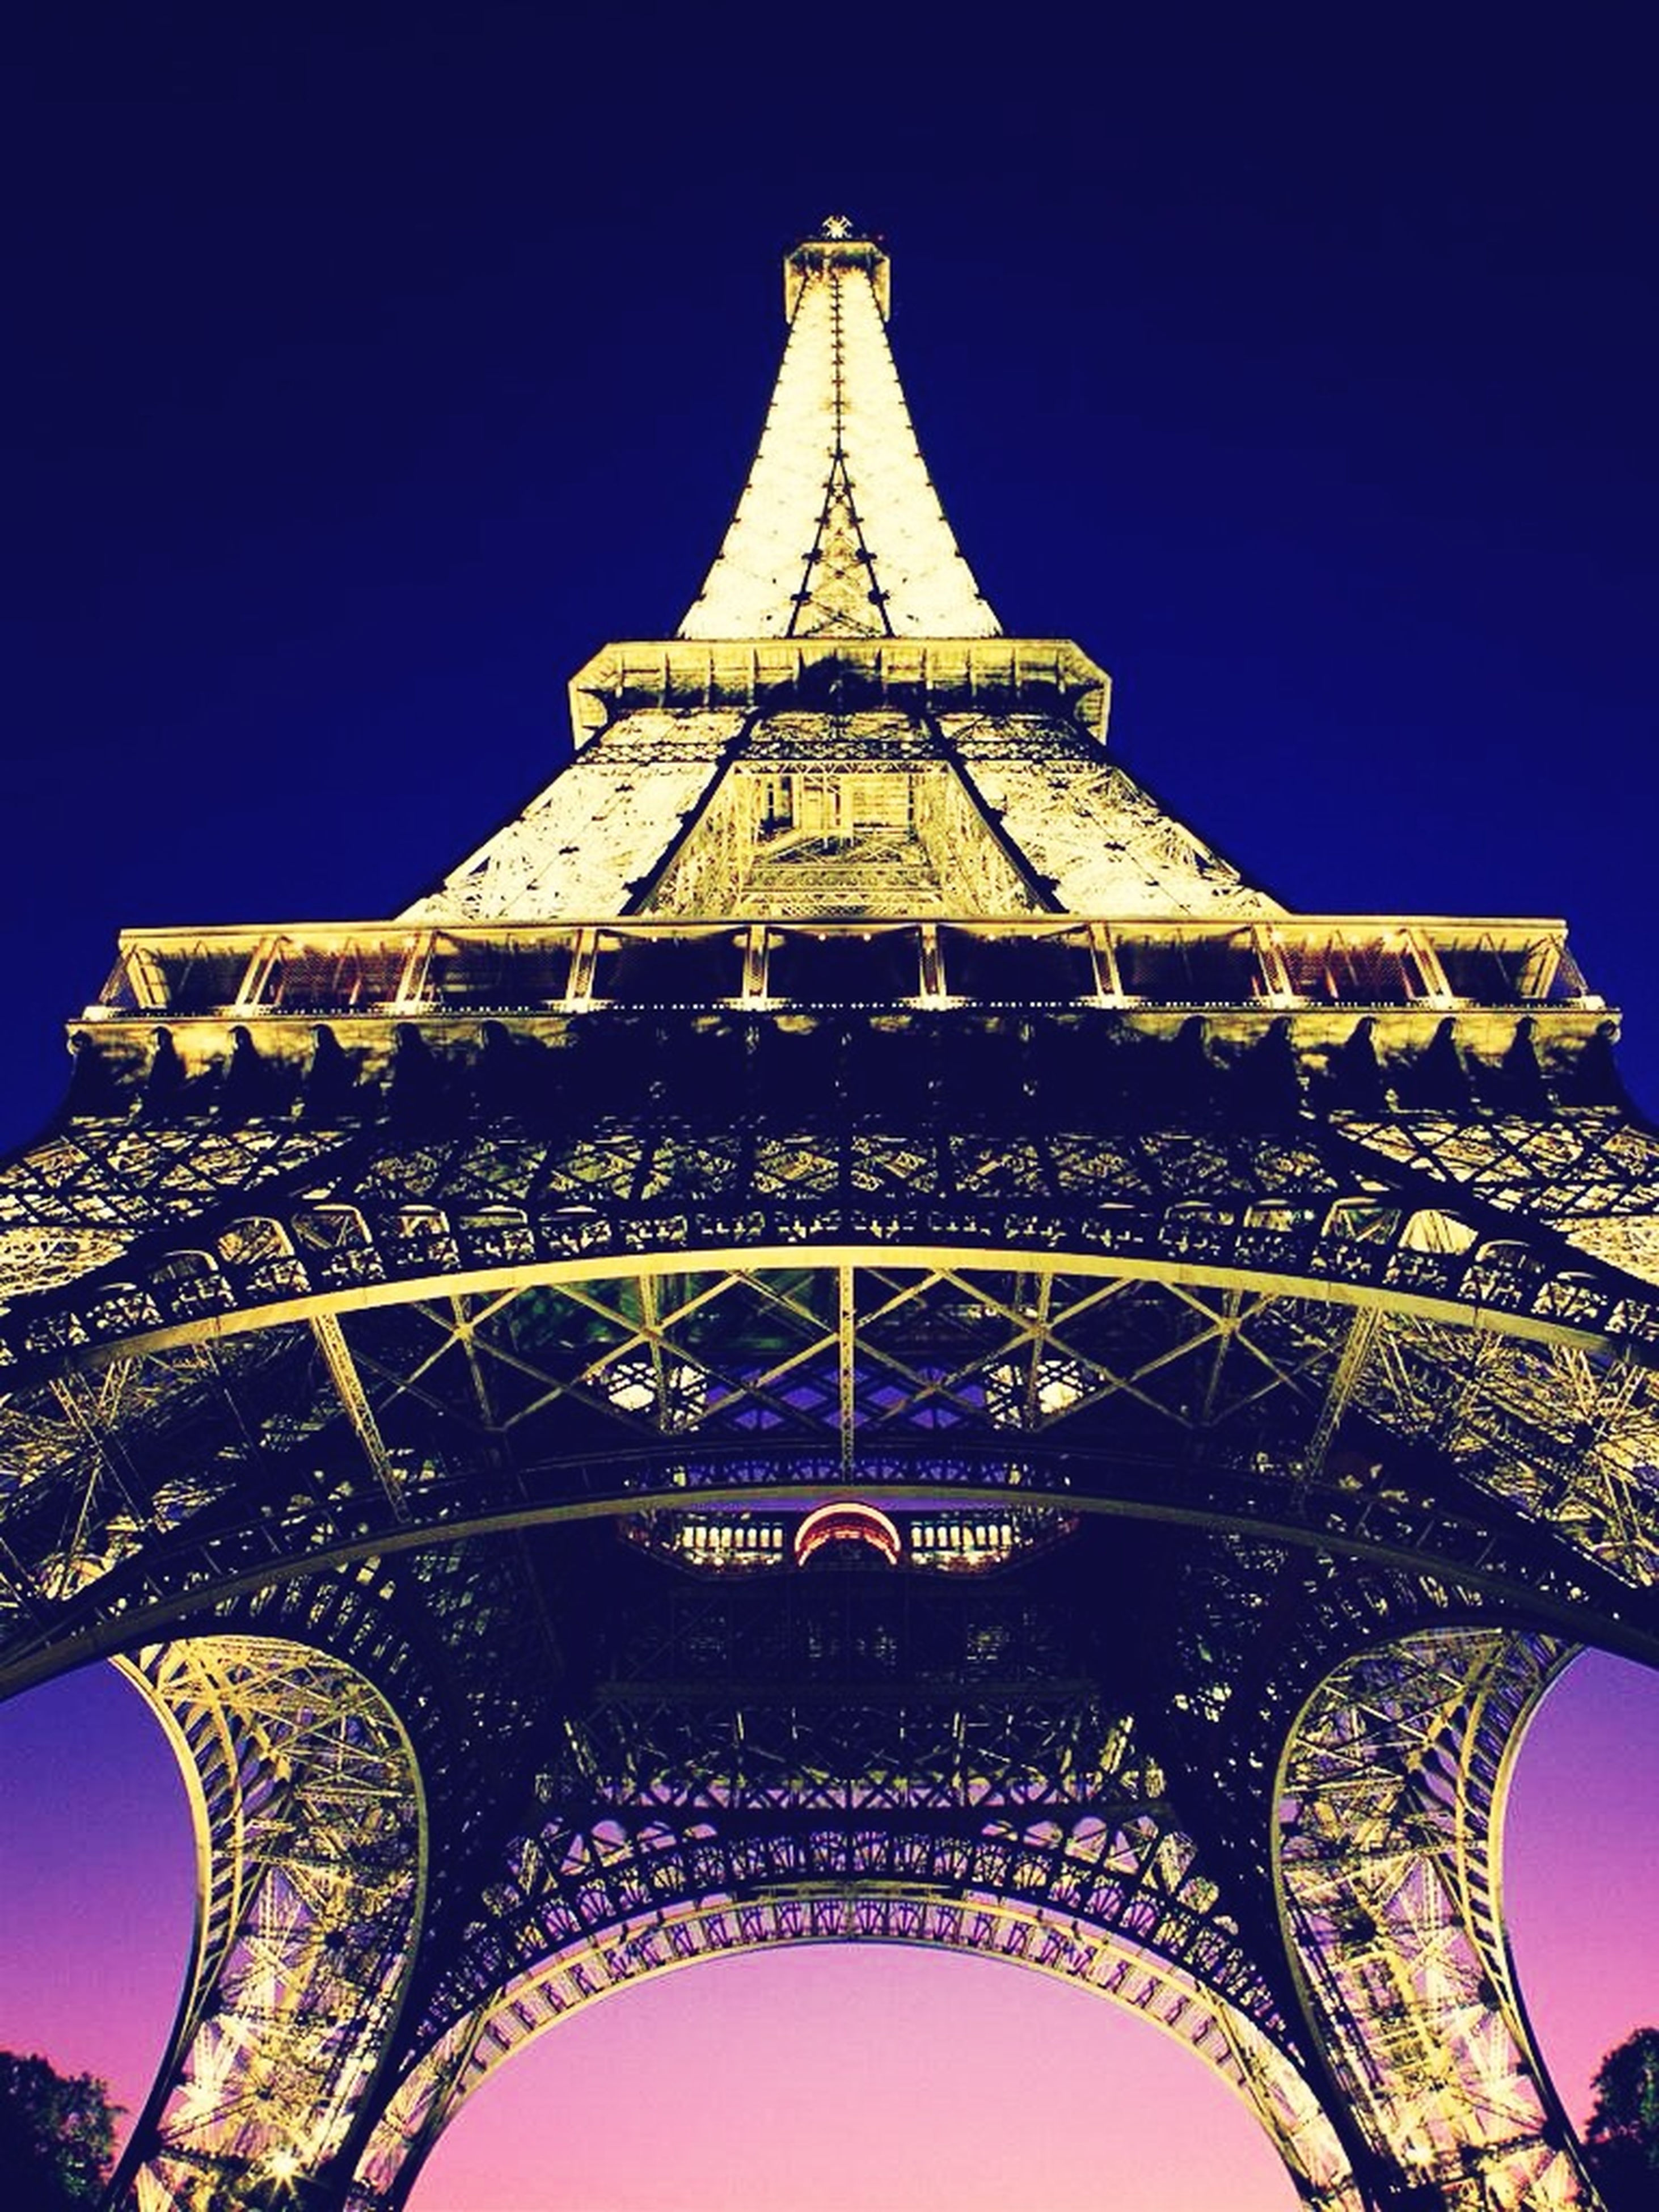 architecture, famous place, low angle view, built structure, international landmark, travel destinations, tourism, travel, capital cities, building exterior, tower, clear sky, religion, place of worship, history, architectural feature, spirituality, blue, eiffel tower, sky